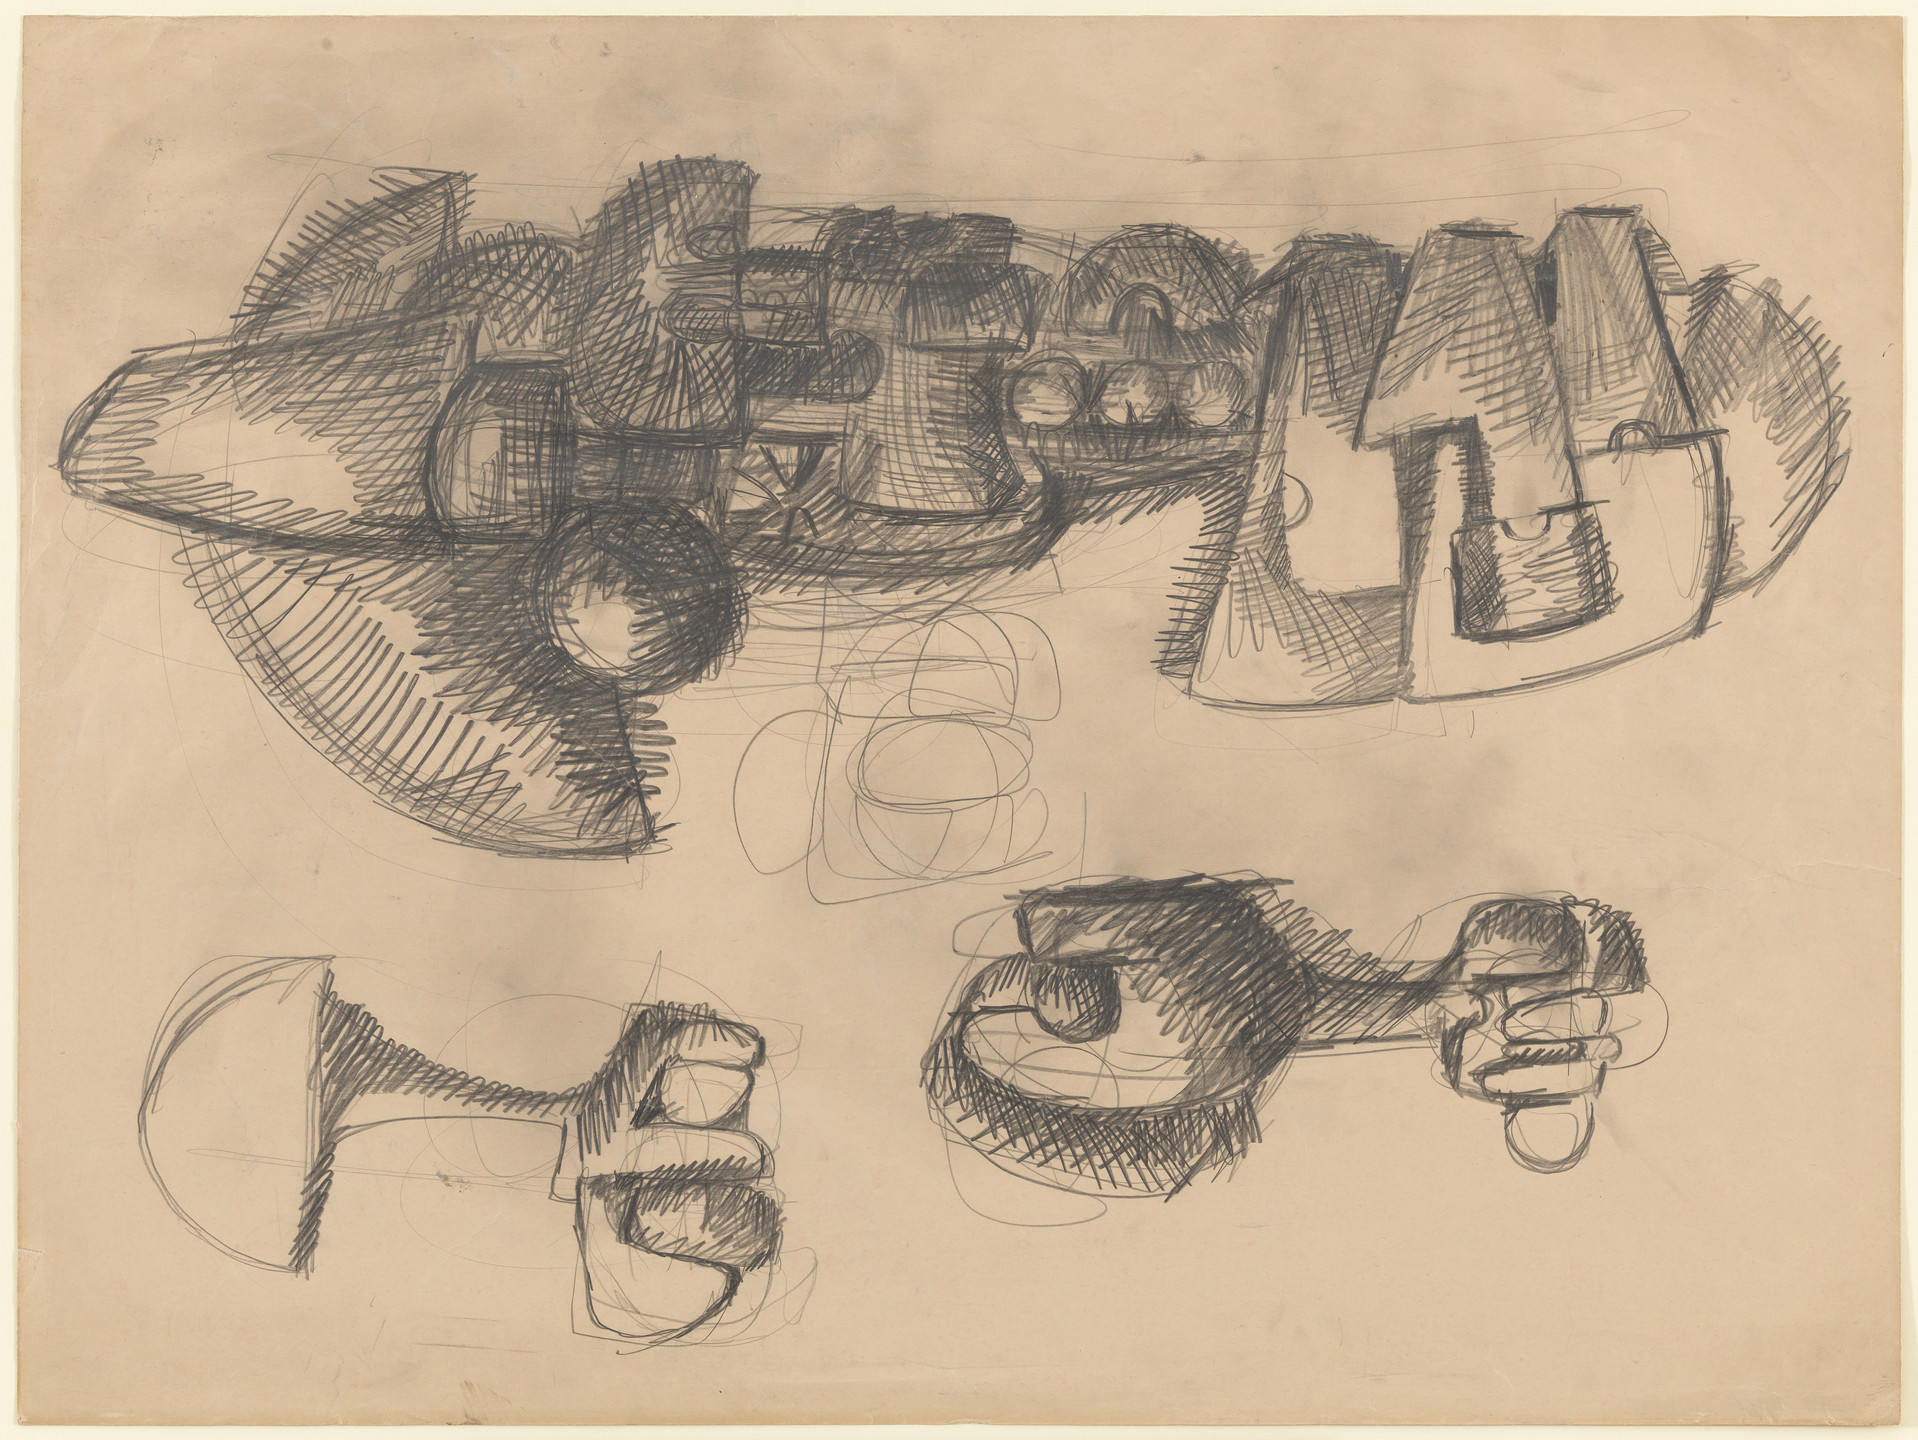 Andrea Cascella. Studies for a Sculpture. 1964